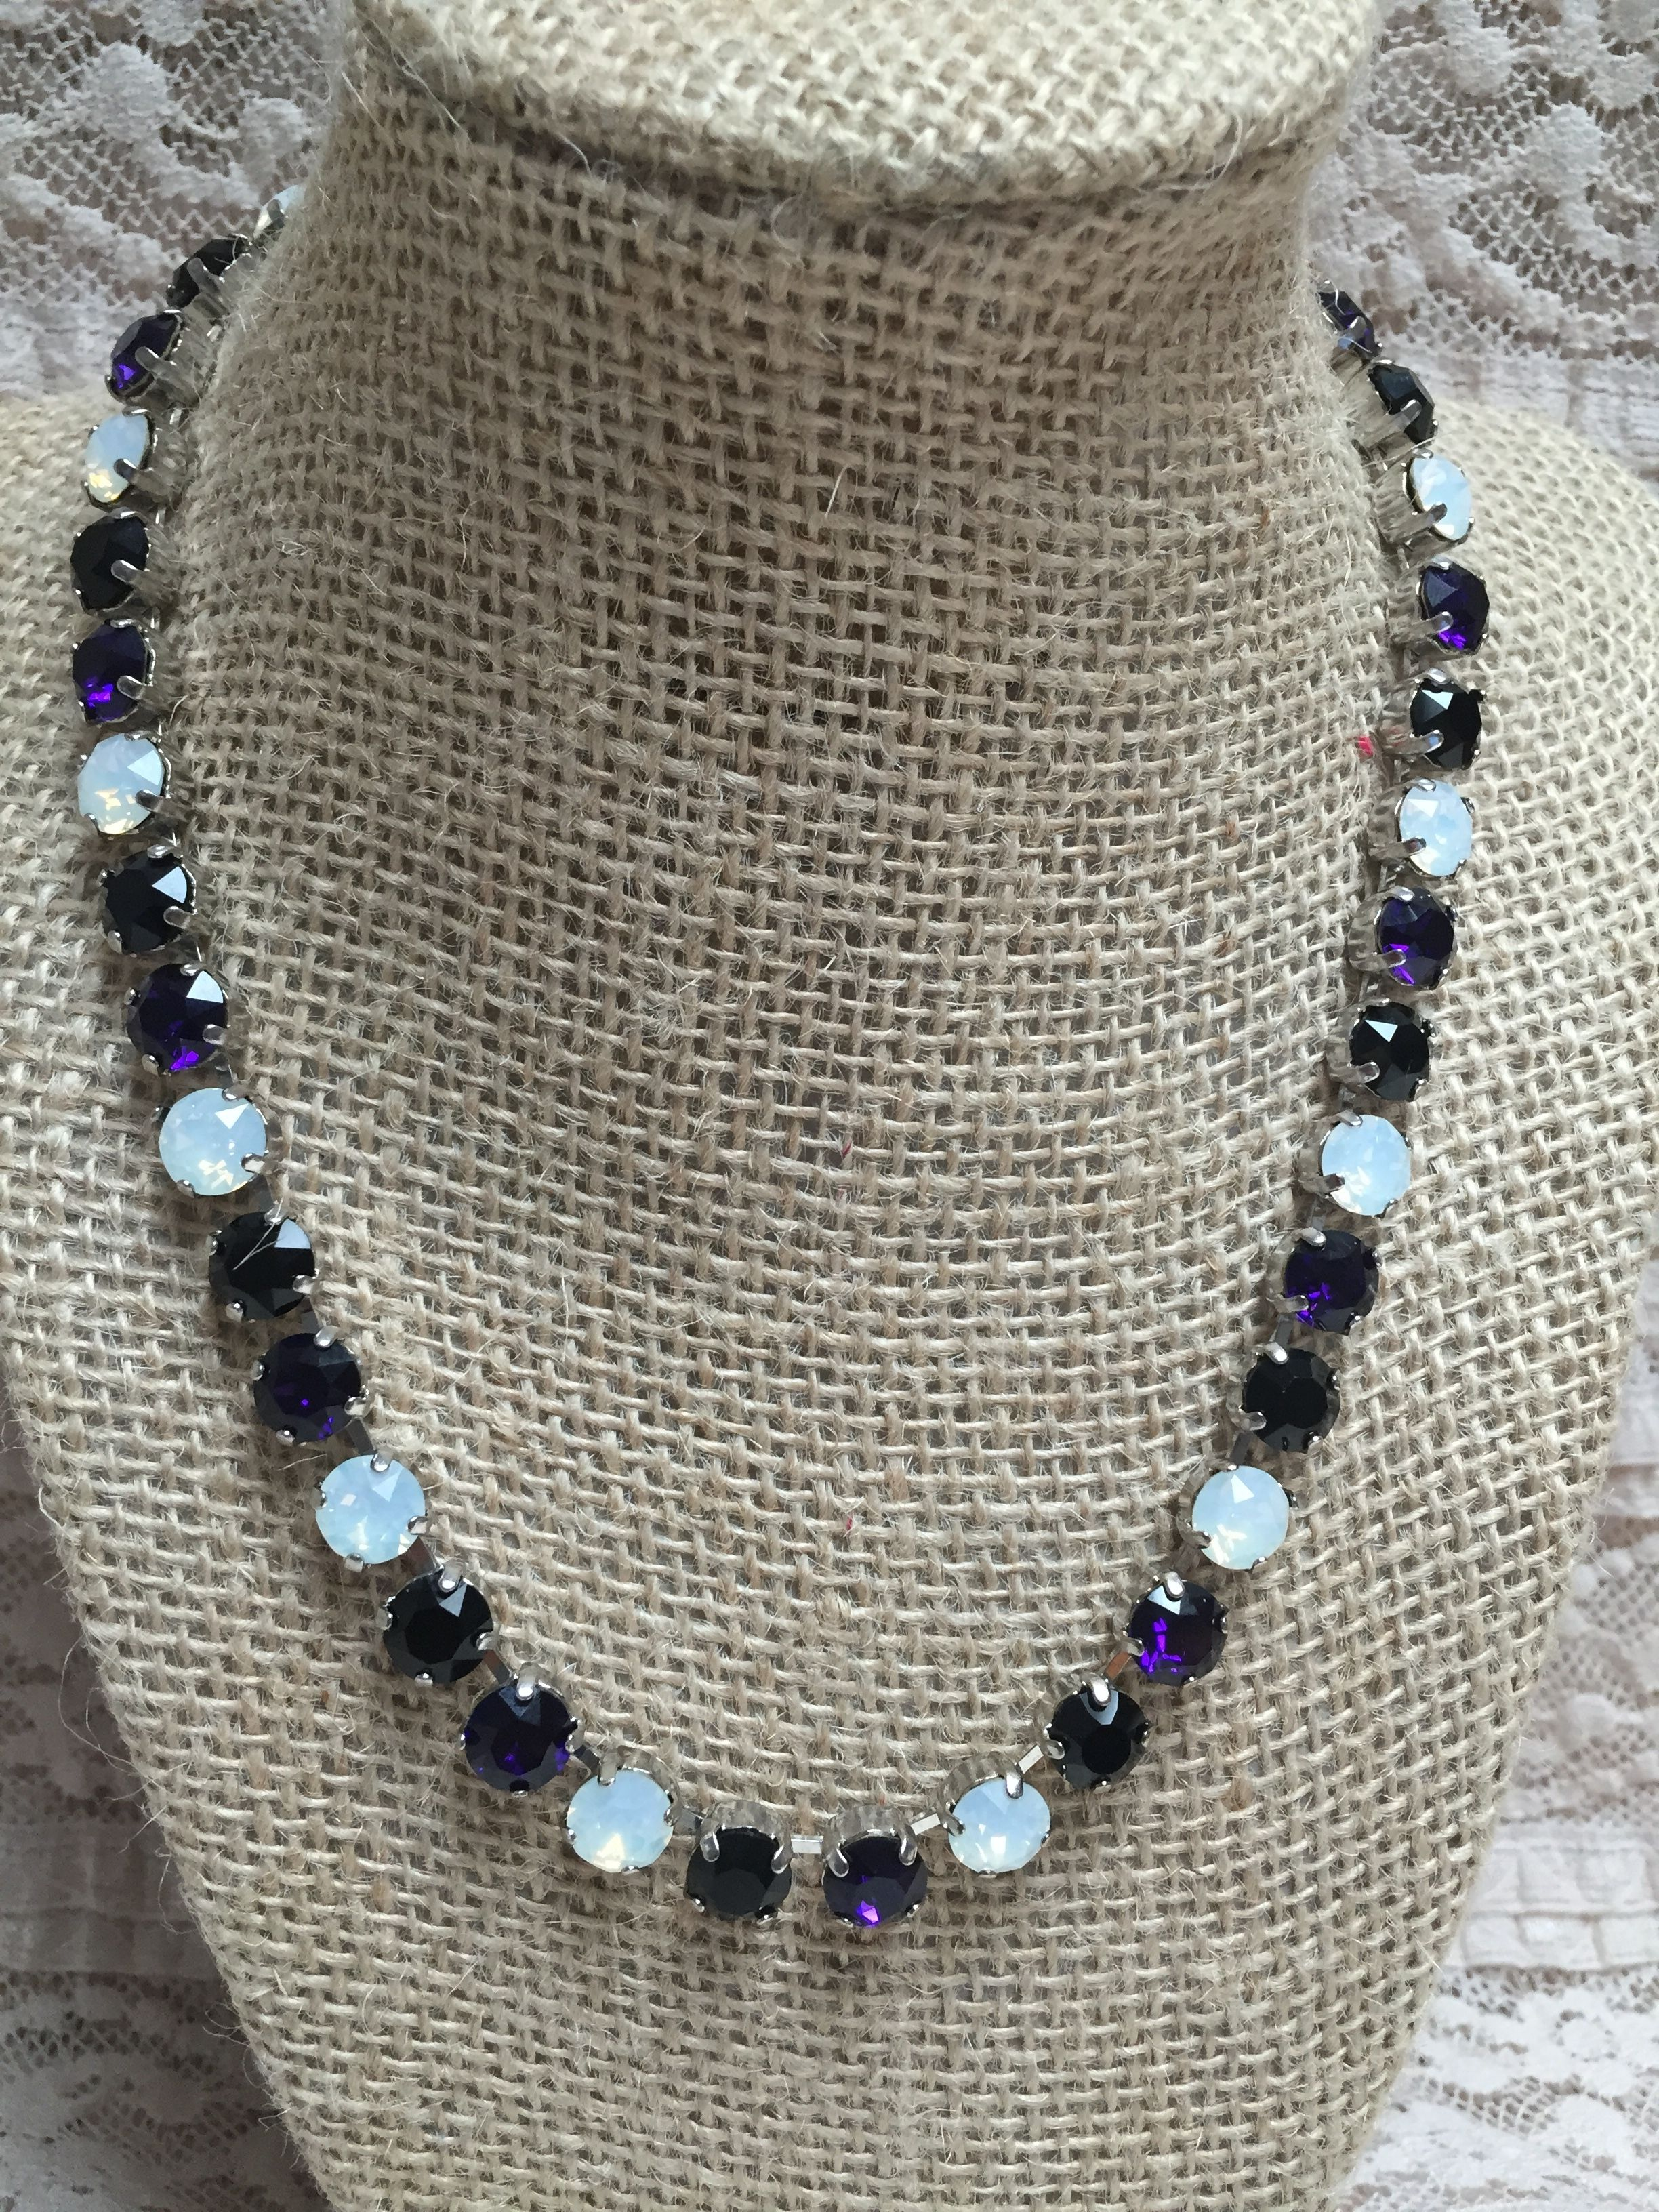 Tanzanite, Onyx and Opal. Colors of the Baltimore Ravens and the Spirit of Texas.